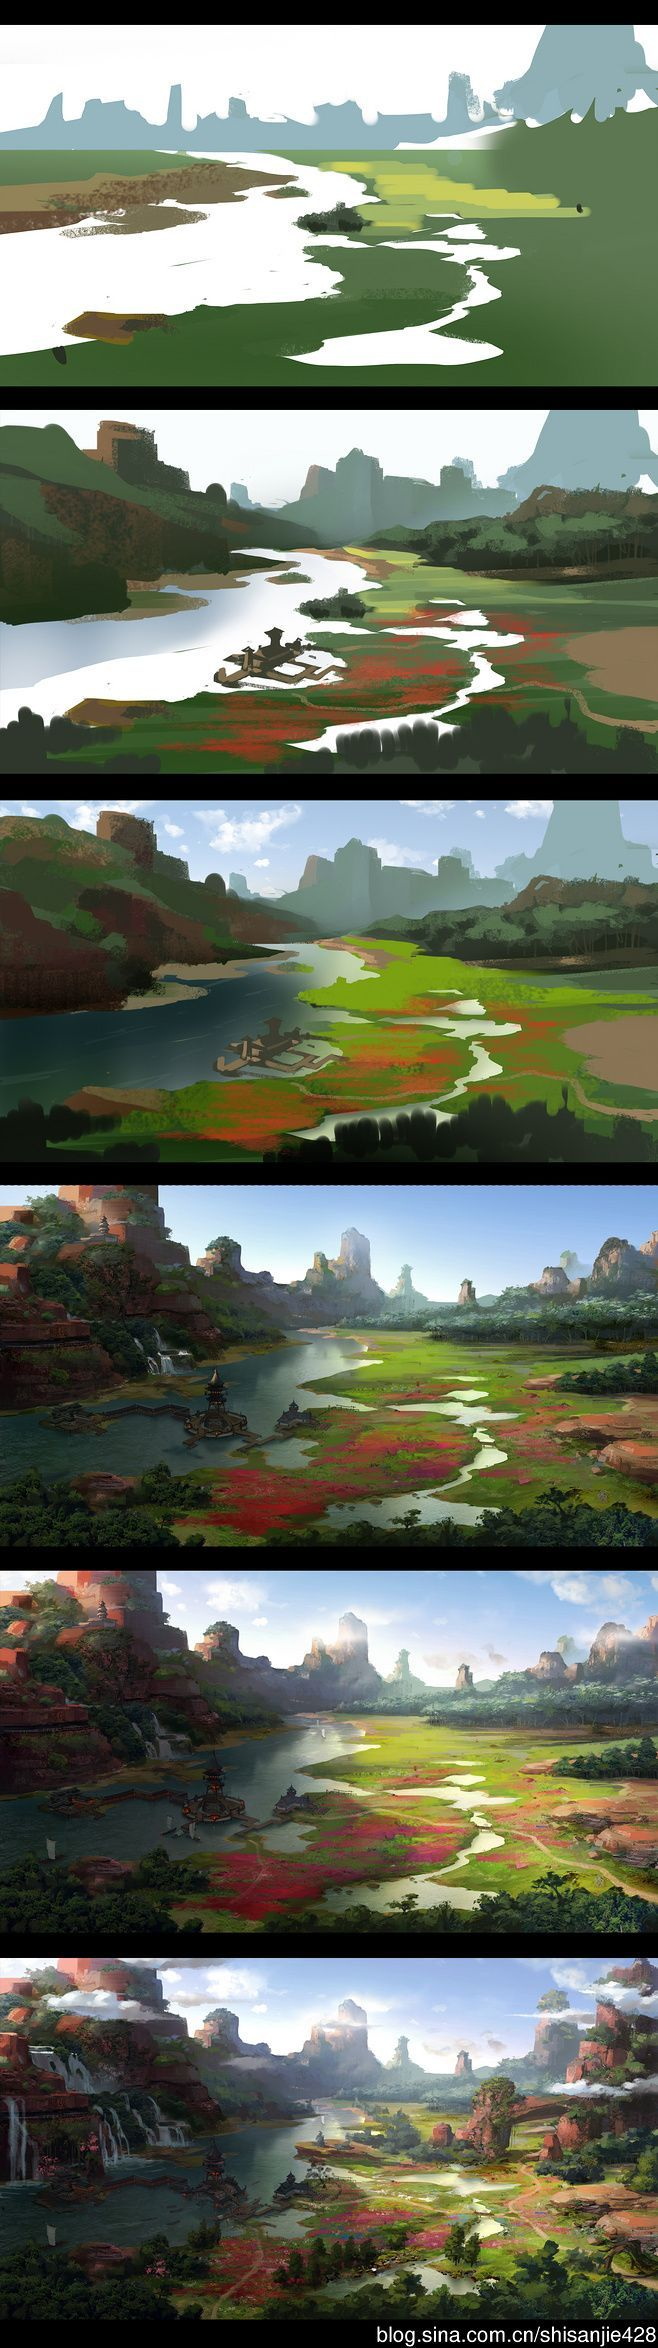 How to paint valley more artworks and tutorials httpswww how to paint valley more artworks and tutorials httpsfacebook paintings of landscapeslandscapes baditri Images